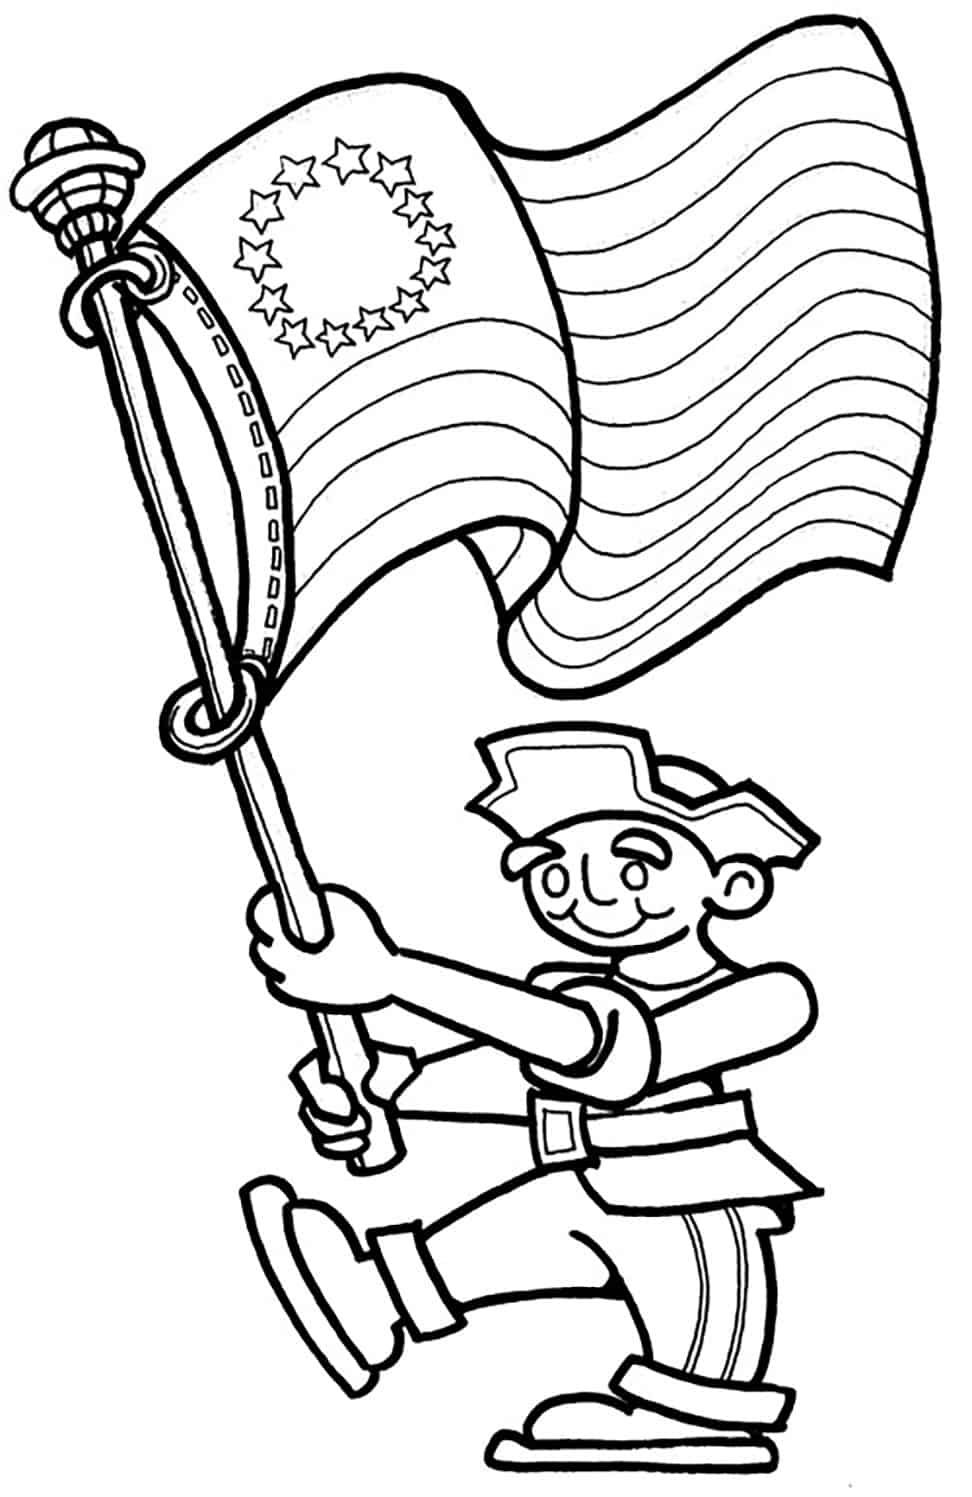 Free 4th Of July Coloring Pages Eku 4th Of July Fireworks 4th